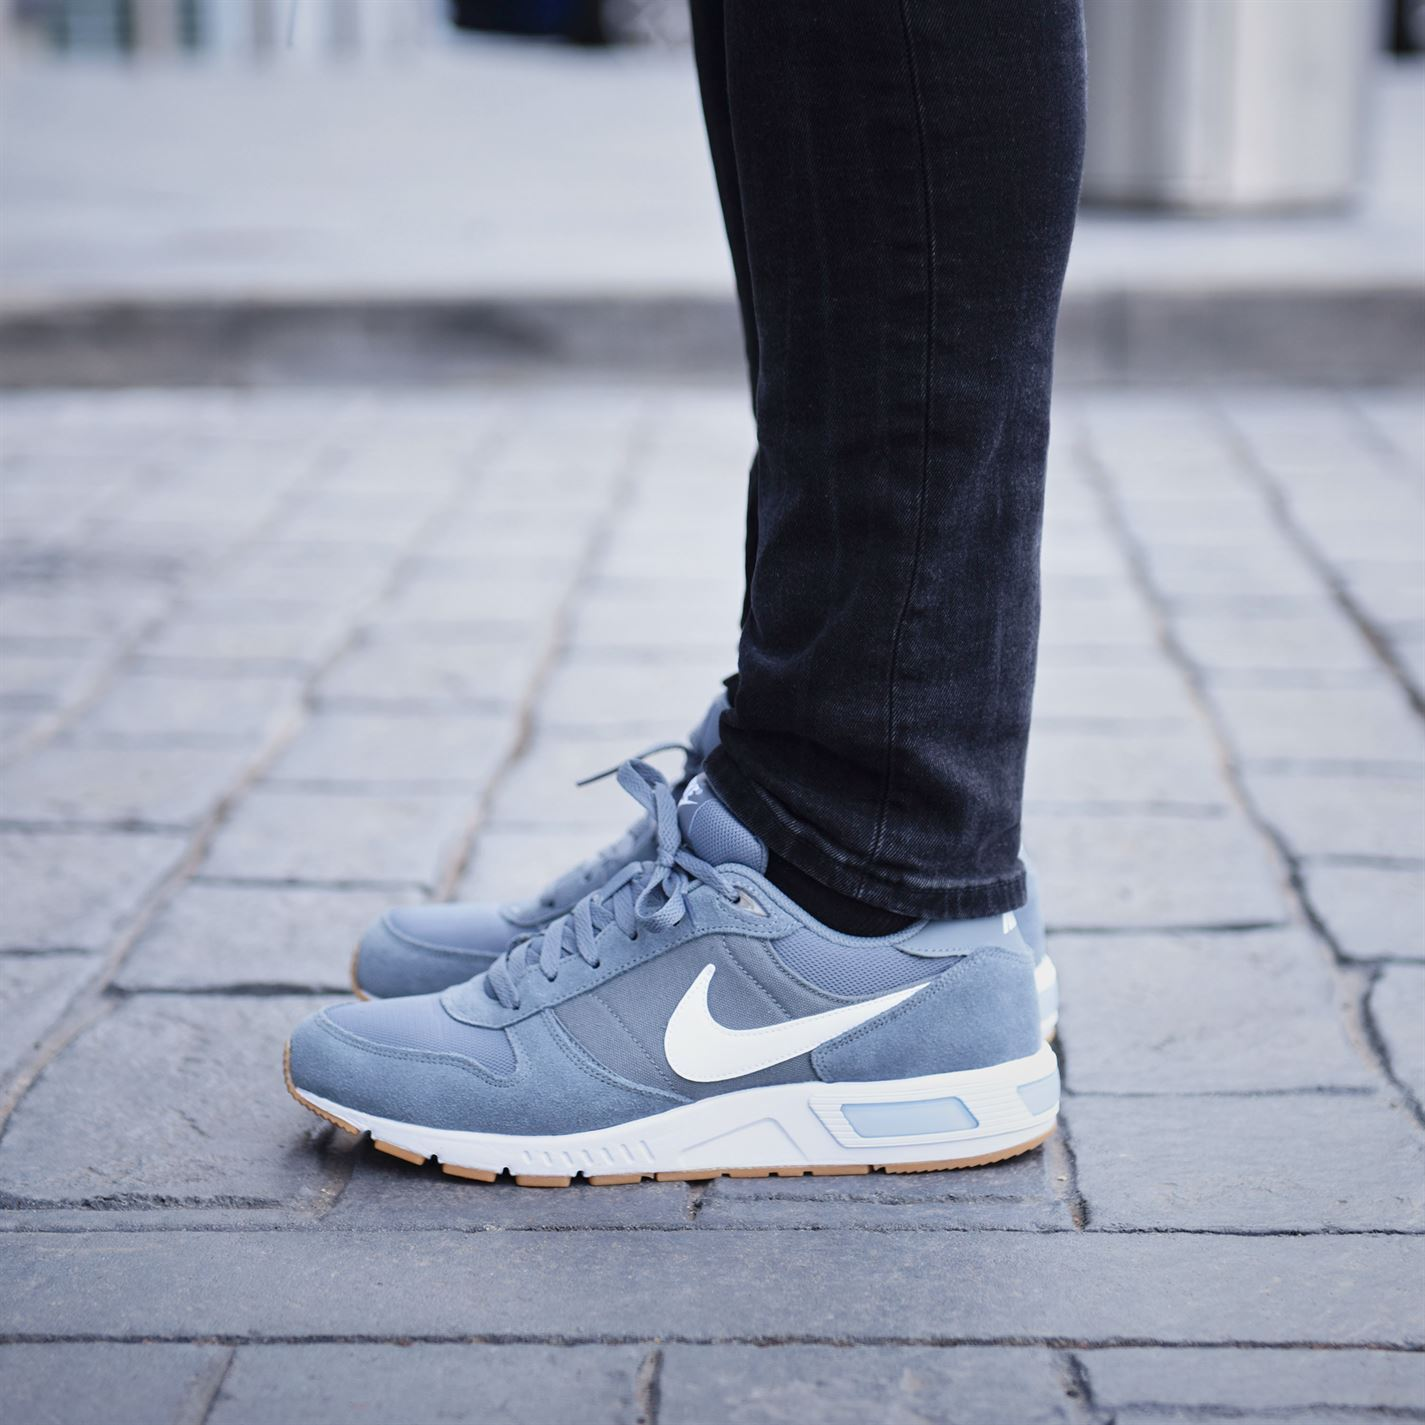 hot sale online 33837 11c81 ... Nike Nightgazer Trainers Mens Grey White Sports Shoes Sneakers